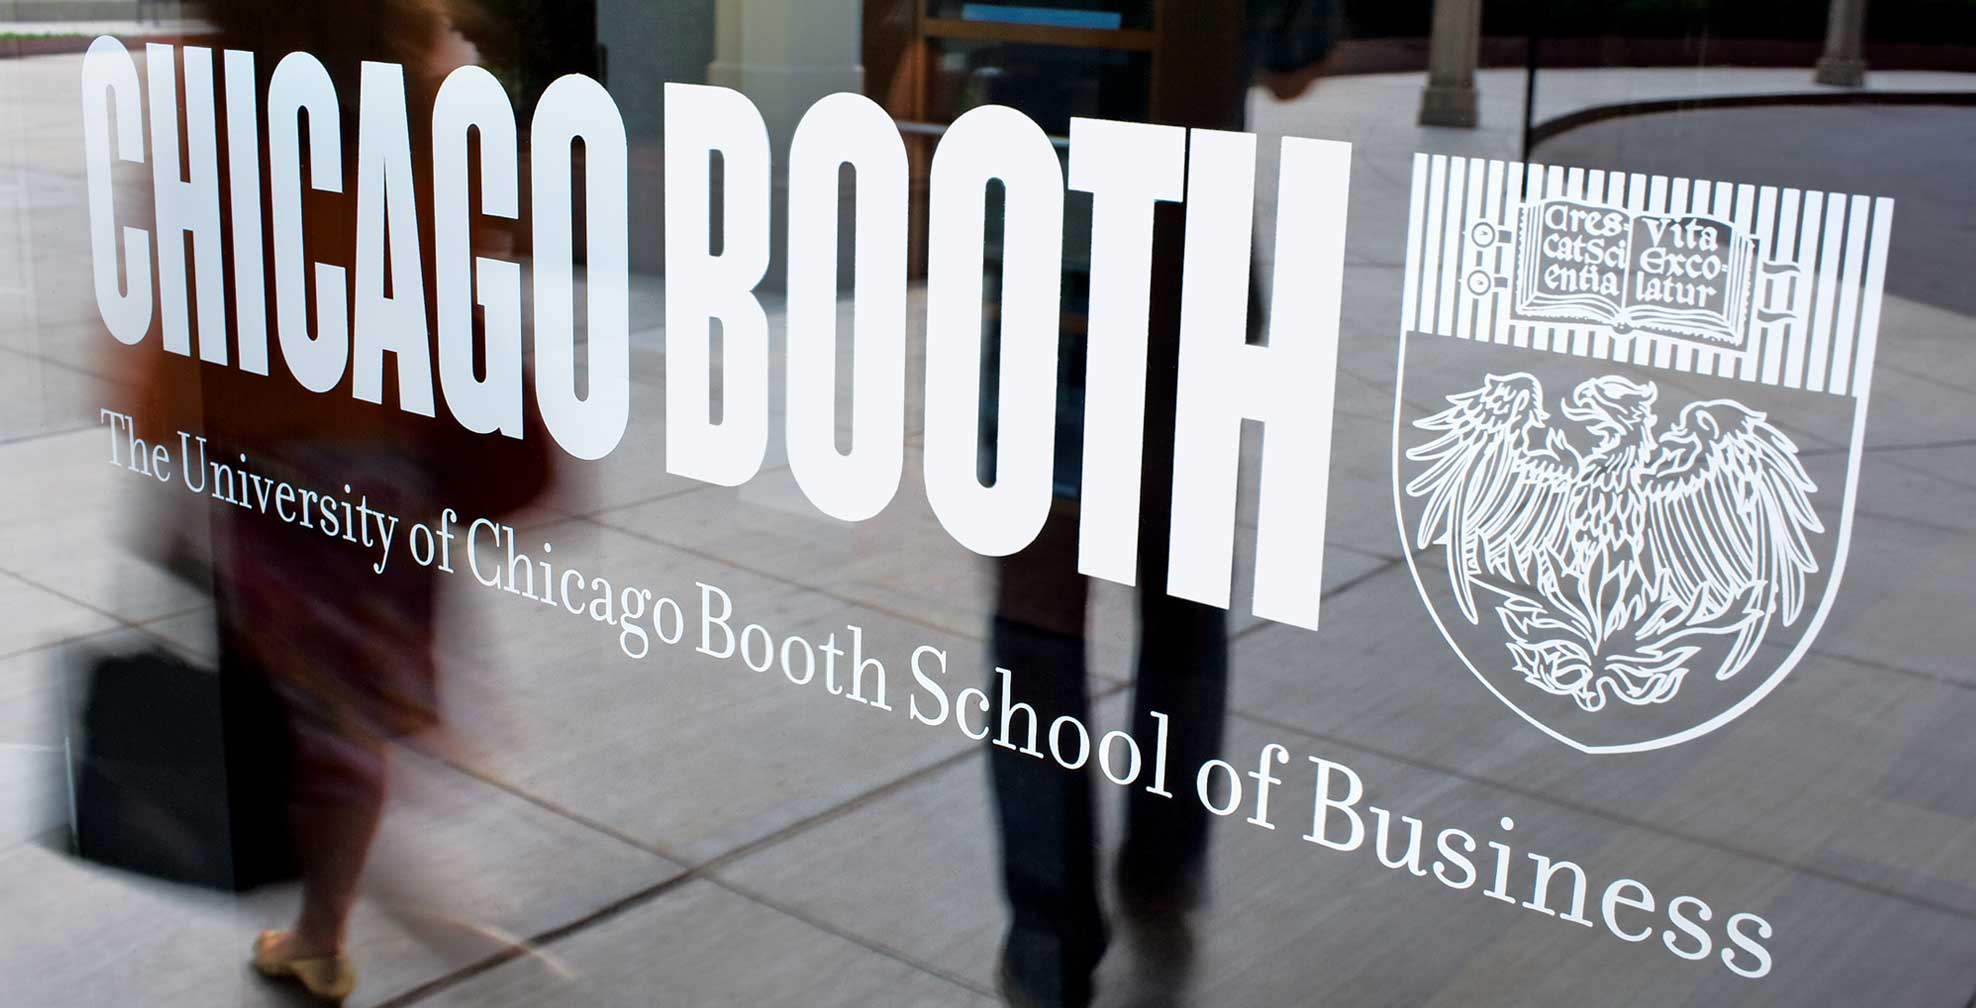 chicago booth essays 2011 analysis Stanford gsb essays for 2010-2011 – free analysis learn the secrets of writing successful stanford gsb essays chicago booth essays 2010-2011.